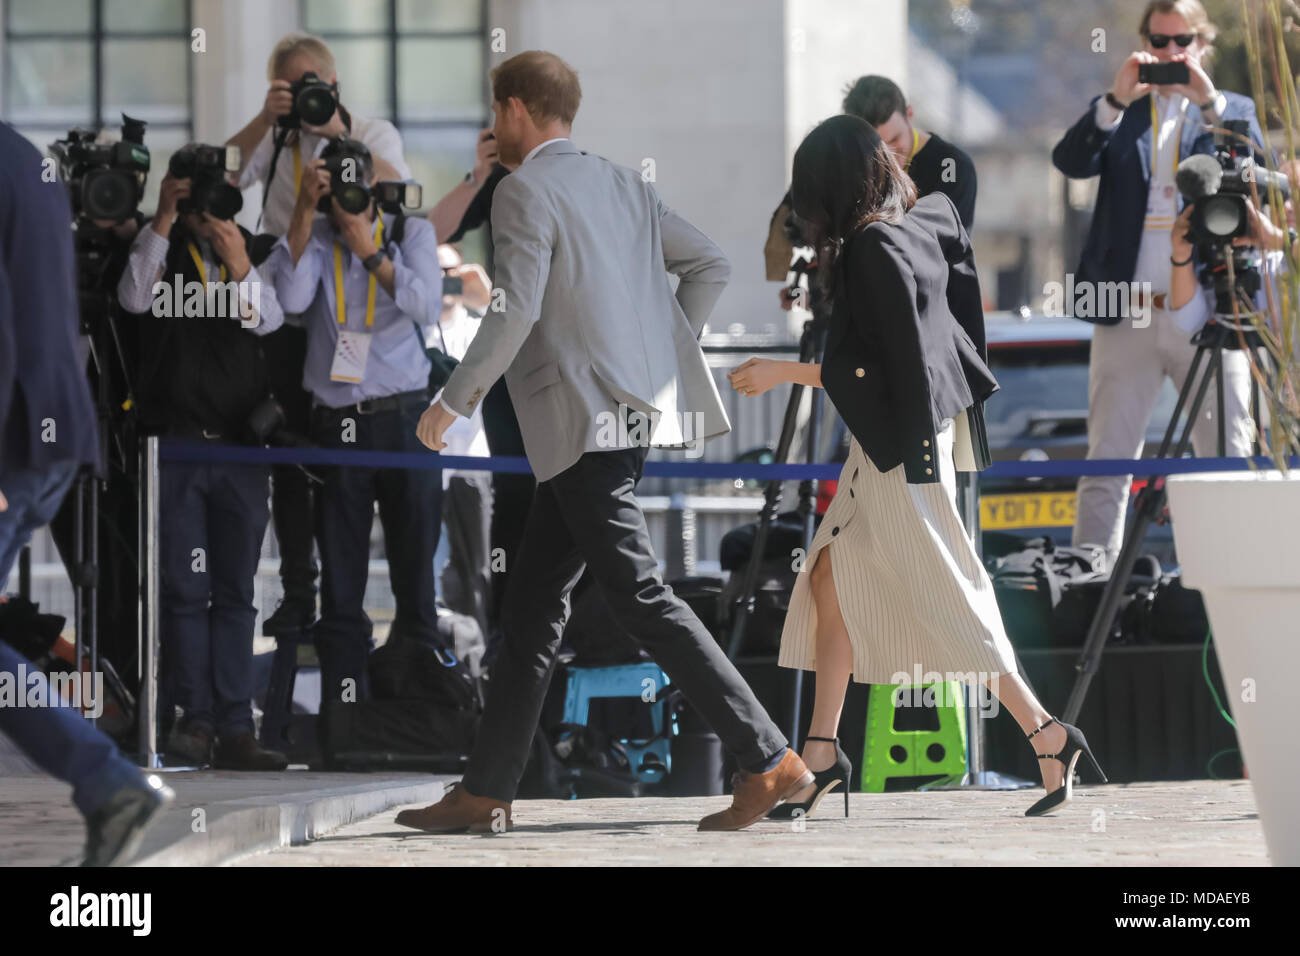 London, UK . 18th April 2018. HRH Prince Harry and Ms. Meghan Markle mirror each others steps perfectly as they walk in unison to a reception with delegates from the Commonwealth Youth Forum at Queen Elizabeth II Conference Centre, London, UK. Credit: Chris Aubrey/Alamy Live News - Stock Image